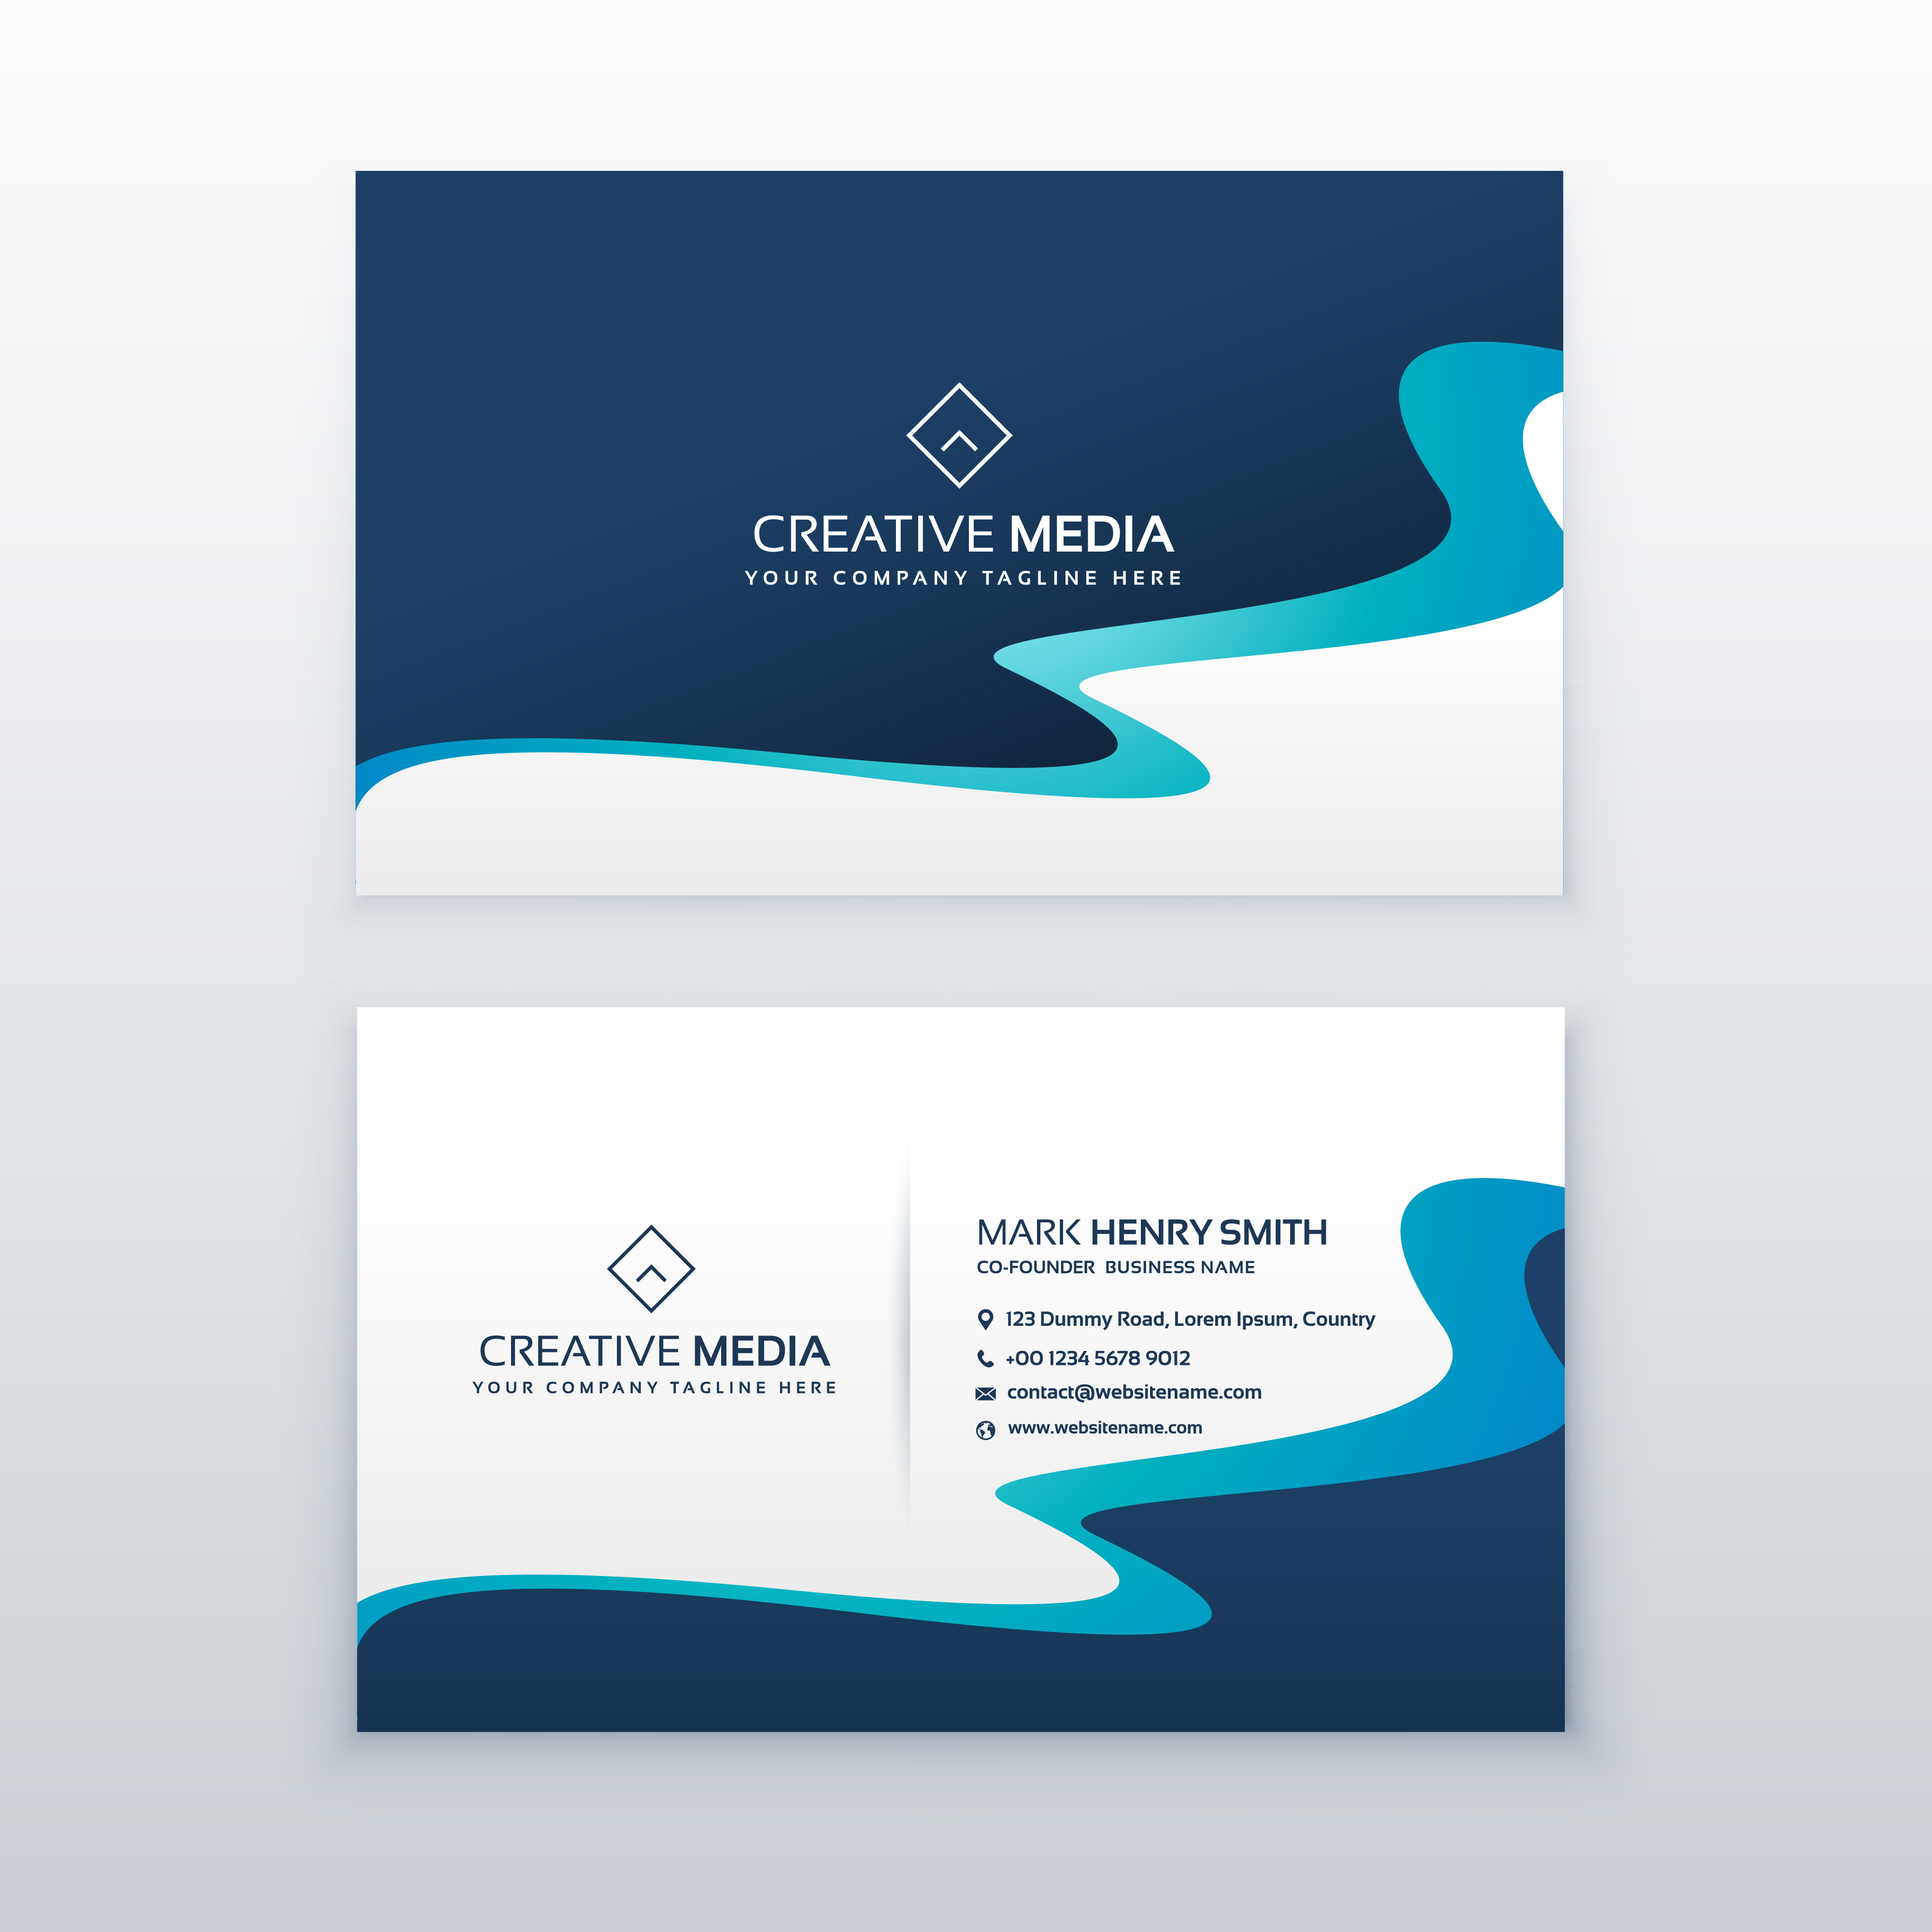 Awesome blue wavy business card design for your brand download awesome blue wavy business card design for your brand download vetores e grficos gratuitos reheart Images